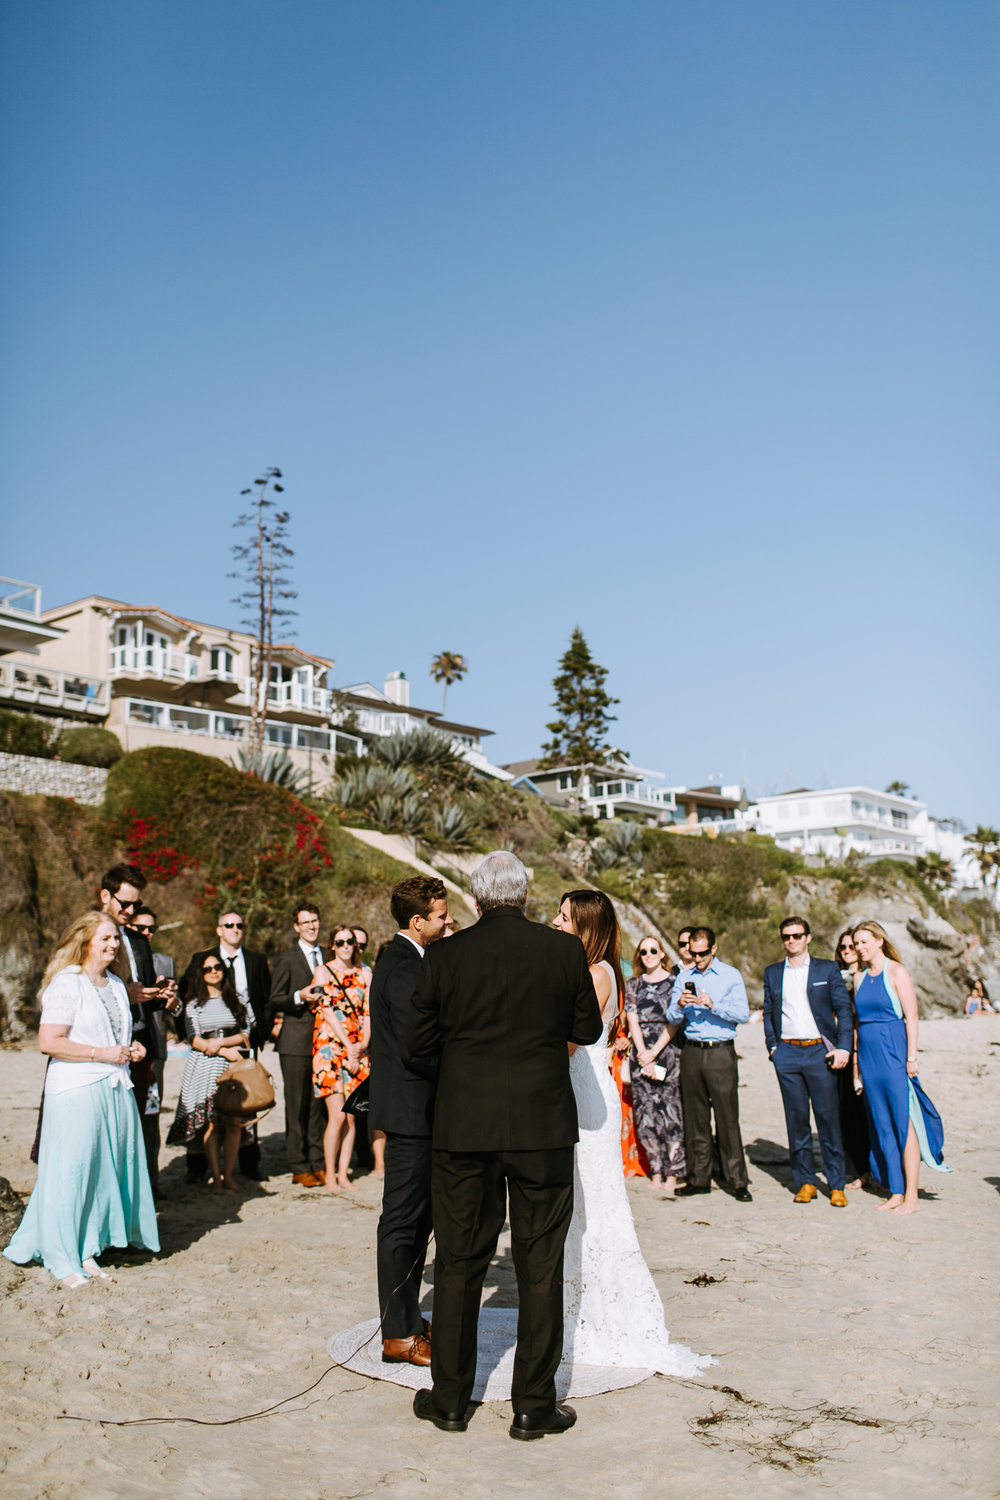 LagunaBeach-WeddingPhotographer-33.jpg